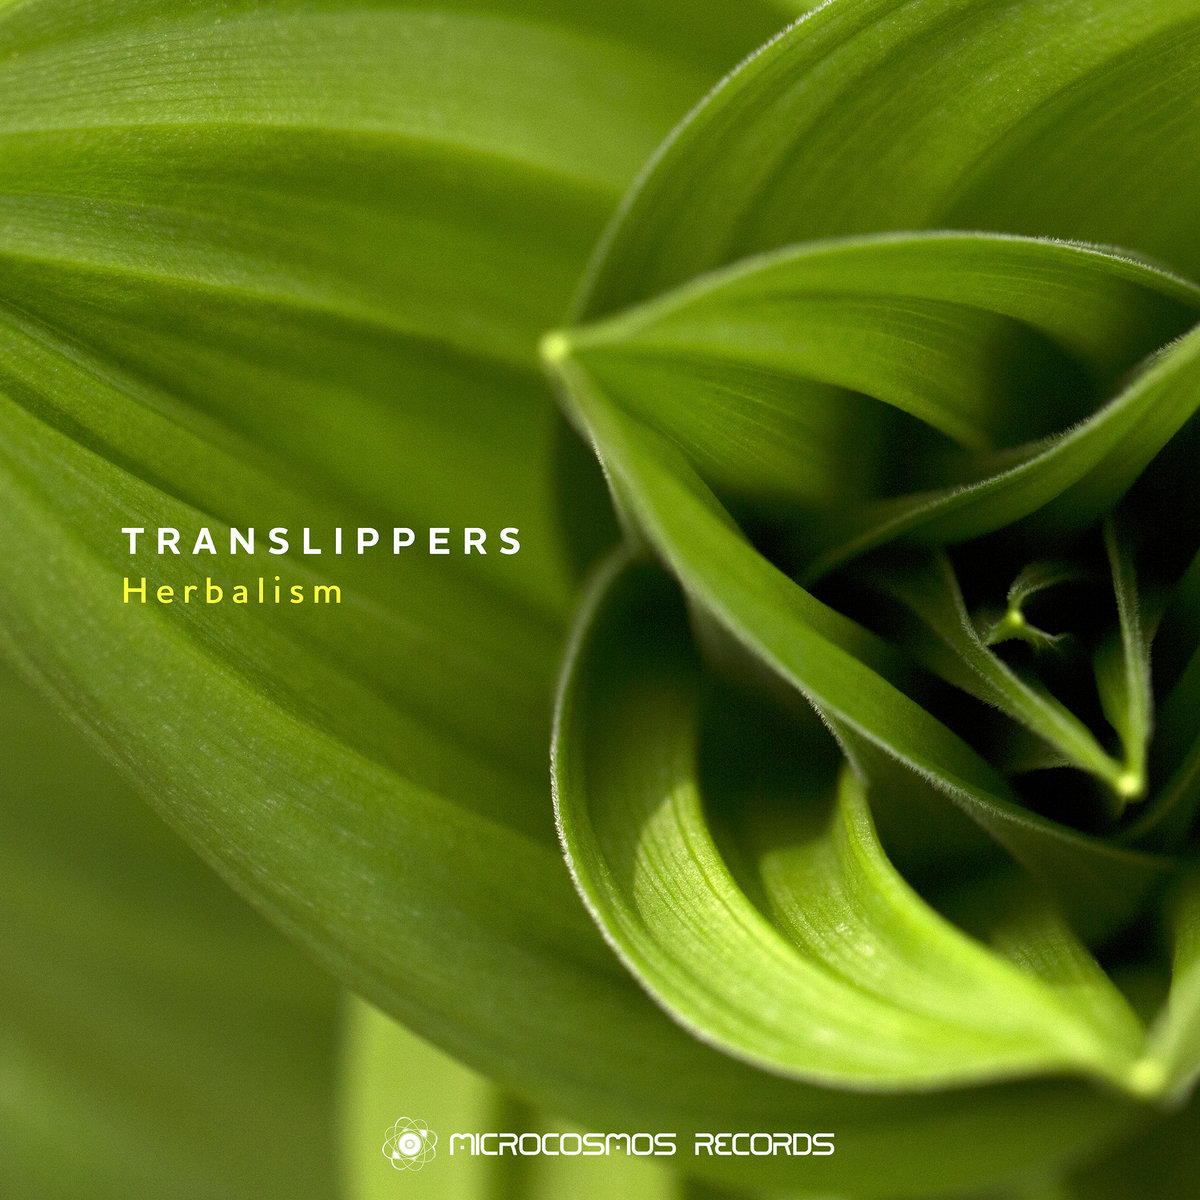 Translippers - Open Heart @ 'Herbalism' album (ambient, chill-out)